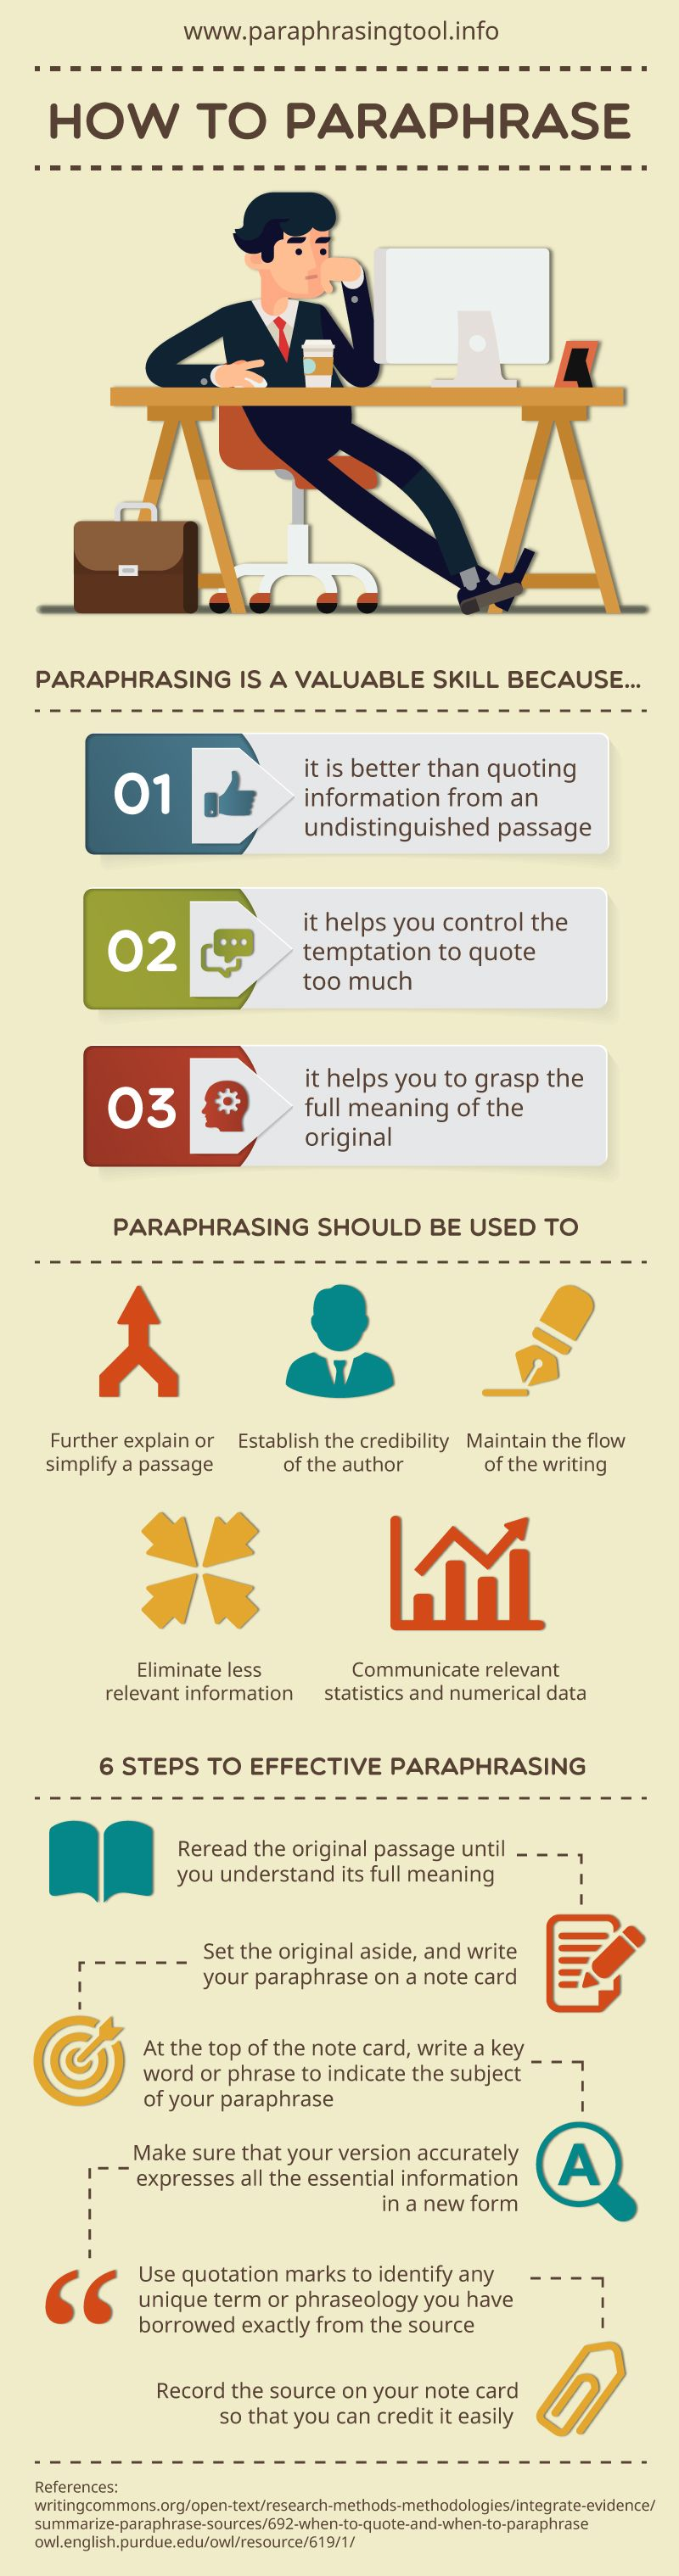 How To Paraphrase Online Learn Math Course Help In Word